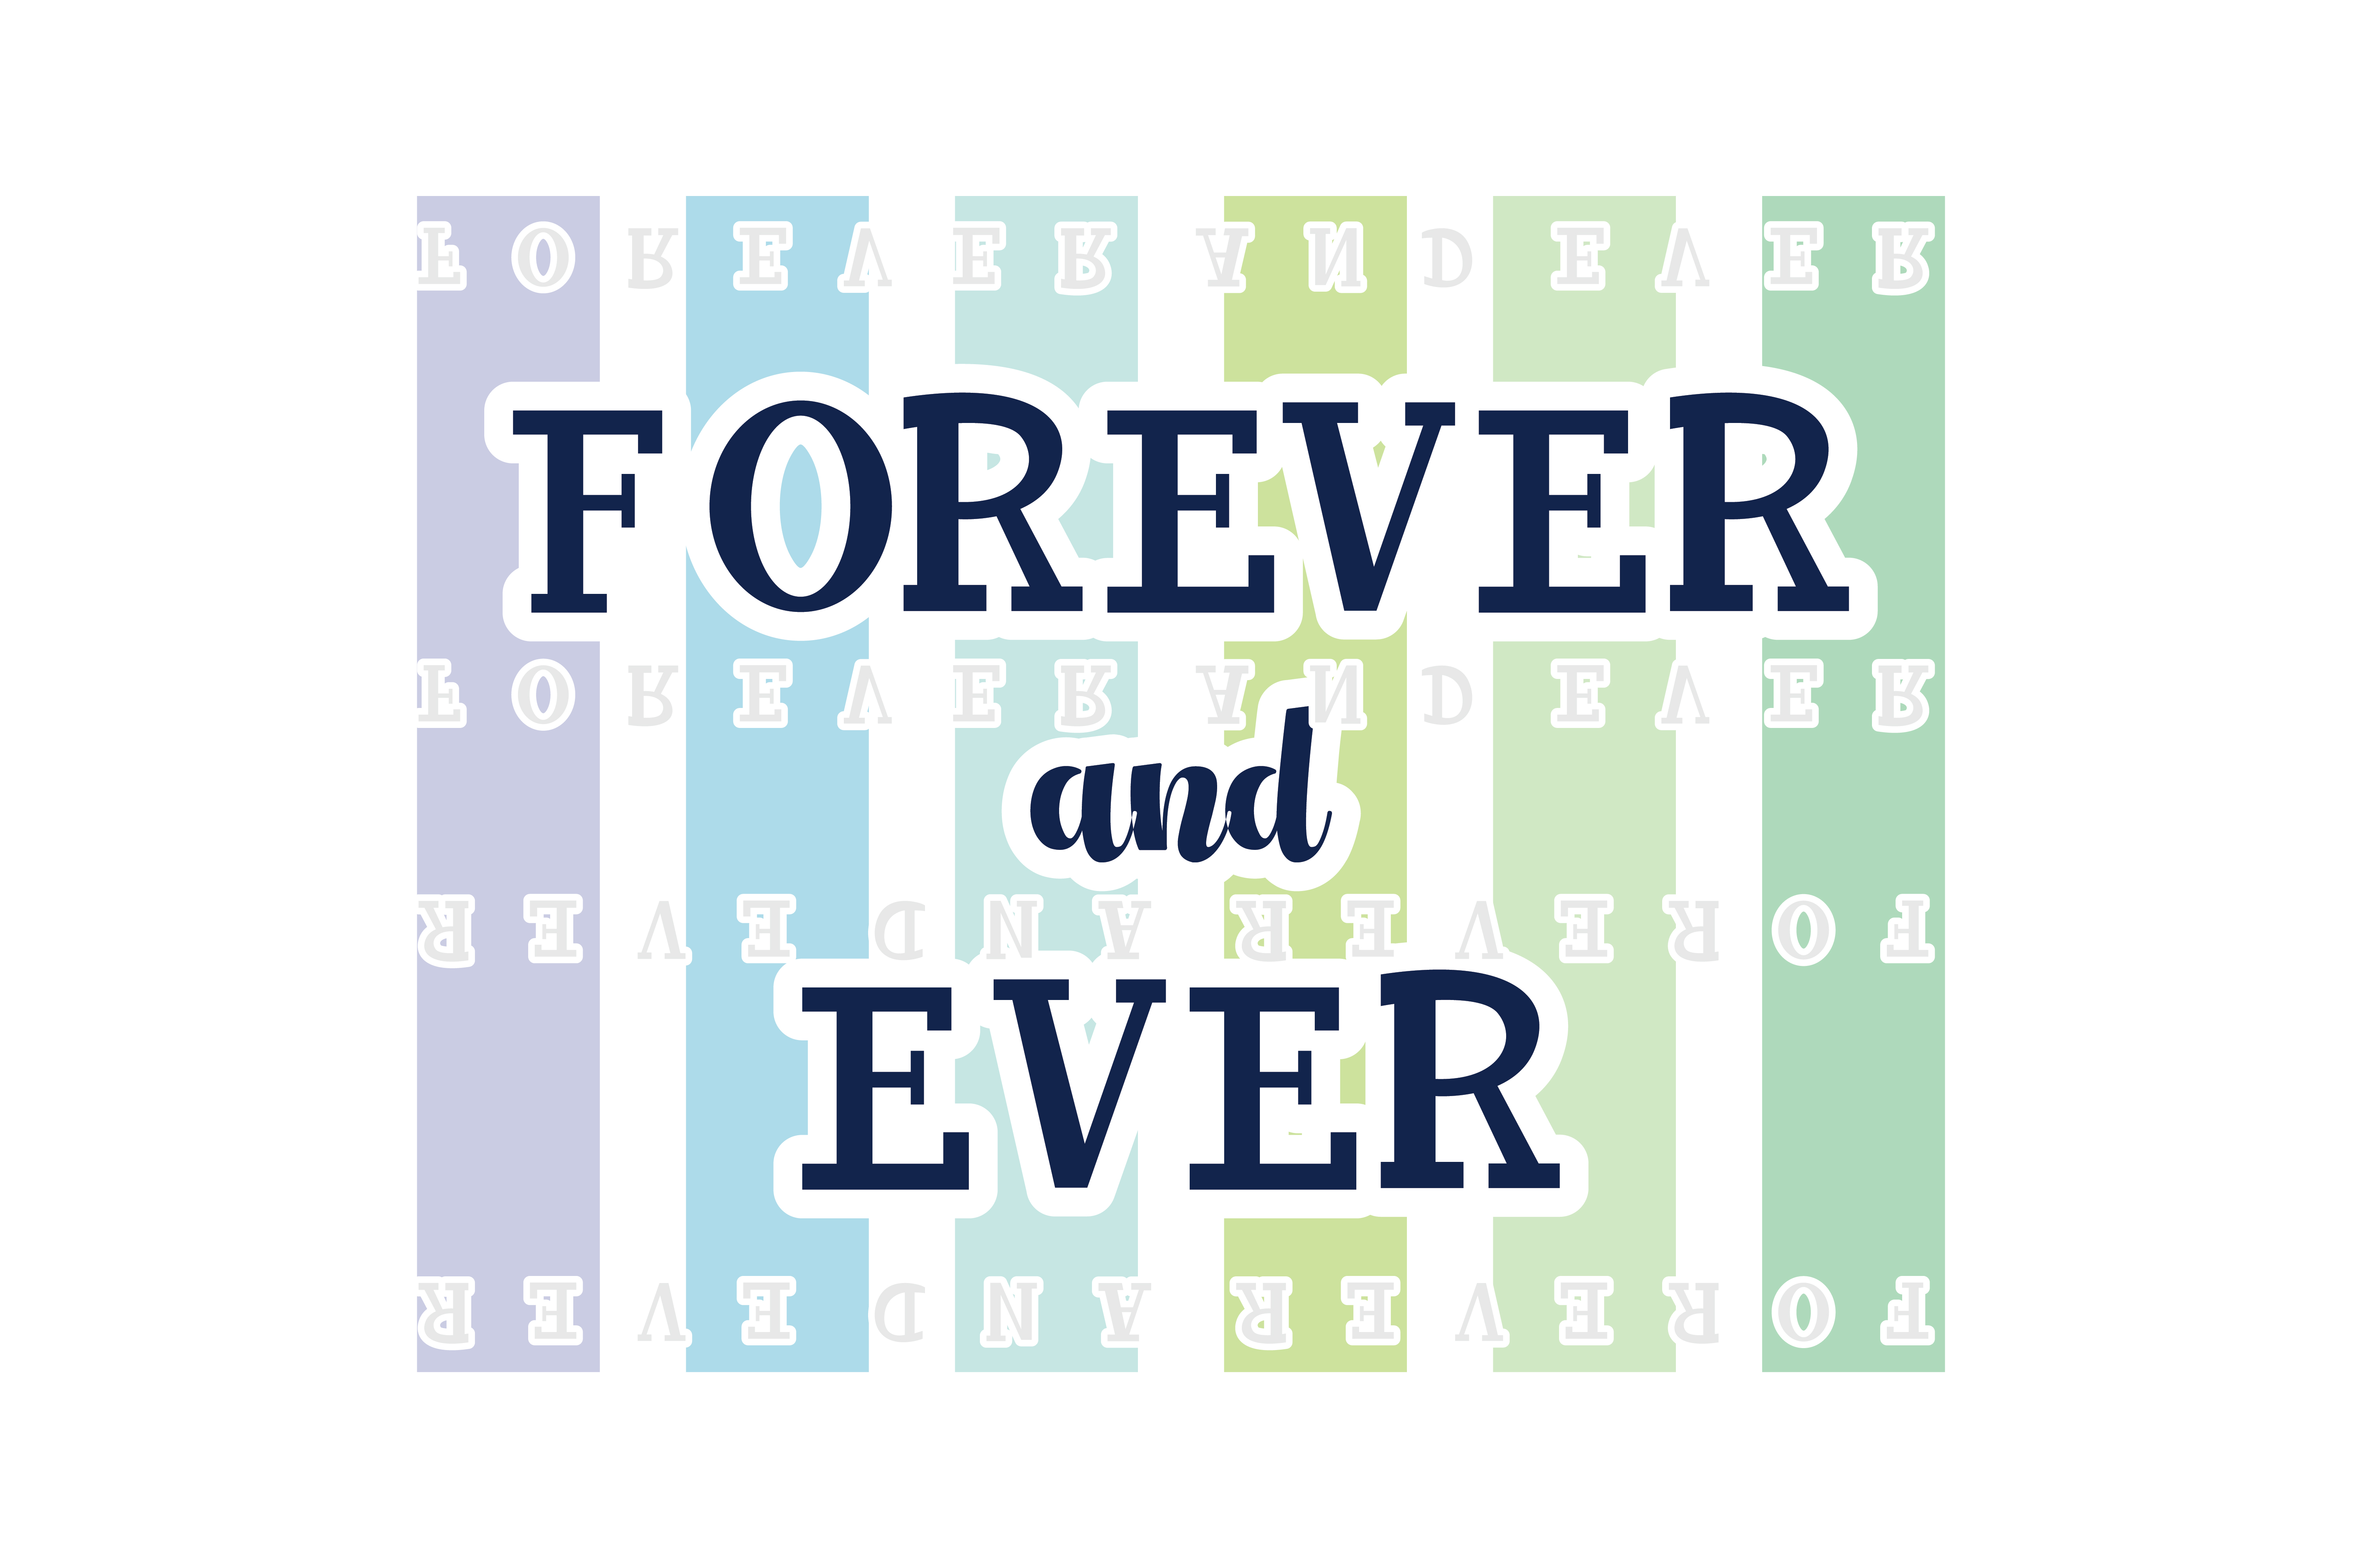 Download Free Forever Ever Quote Svg Cut Graphic By Yuhana Purwanti for Cricut Explore, Silhouette and other cutting machines.